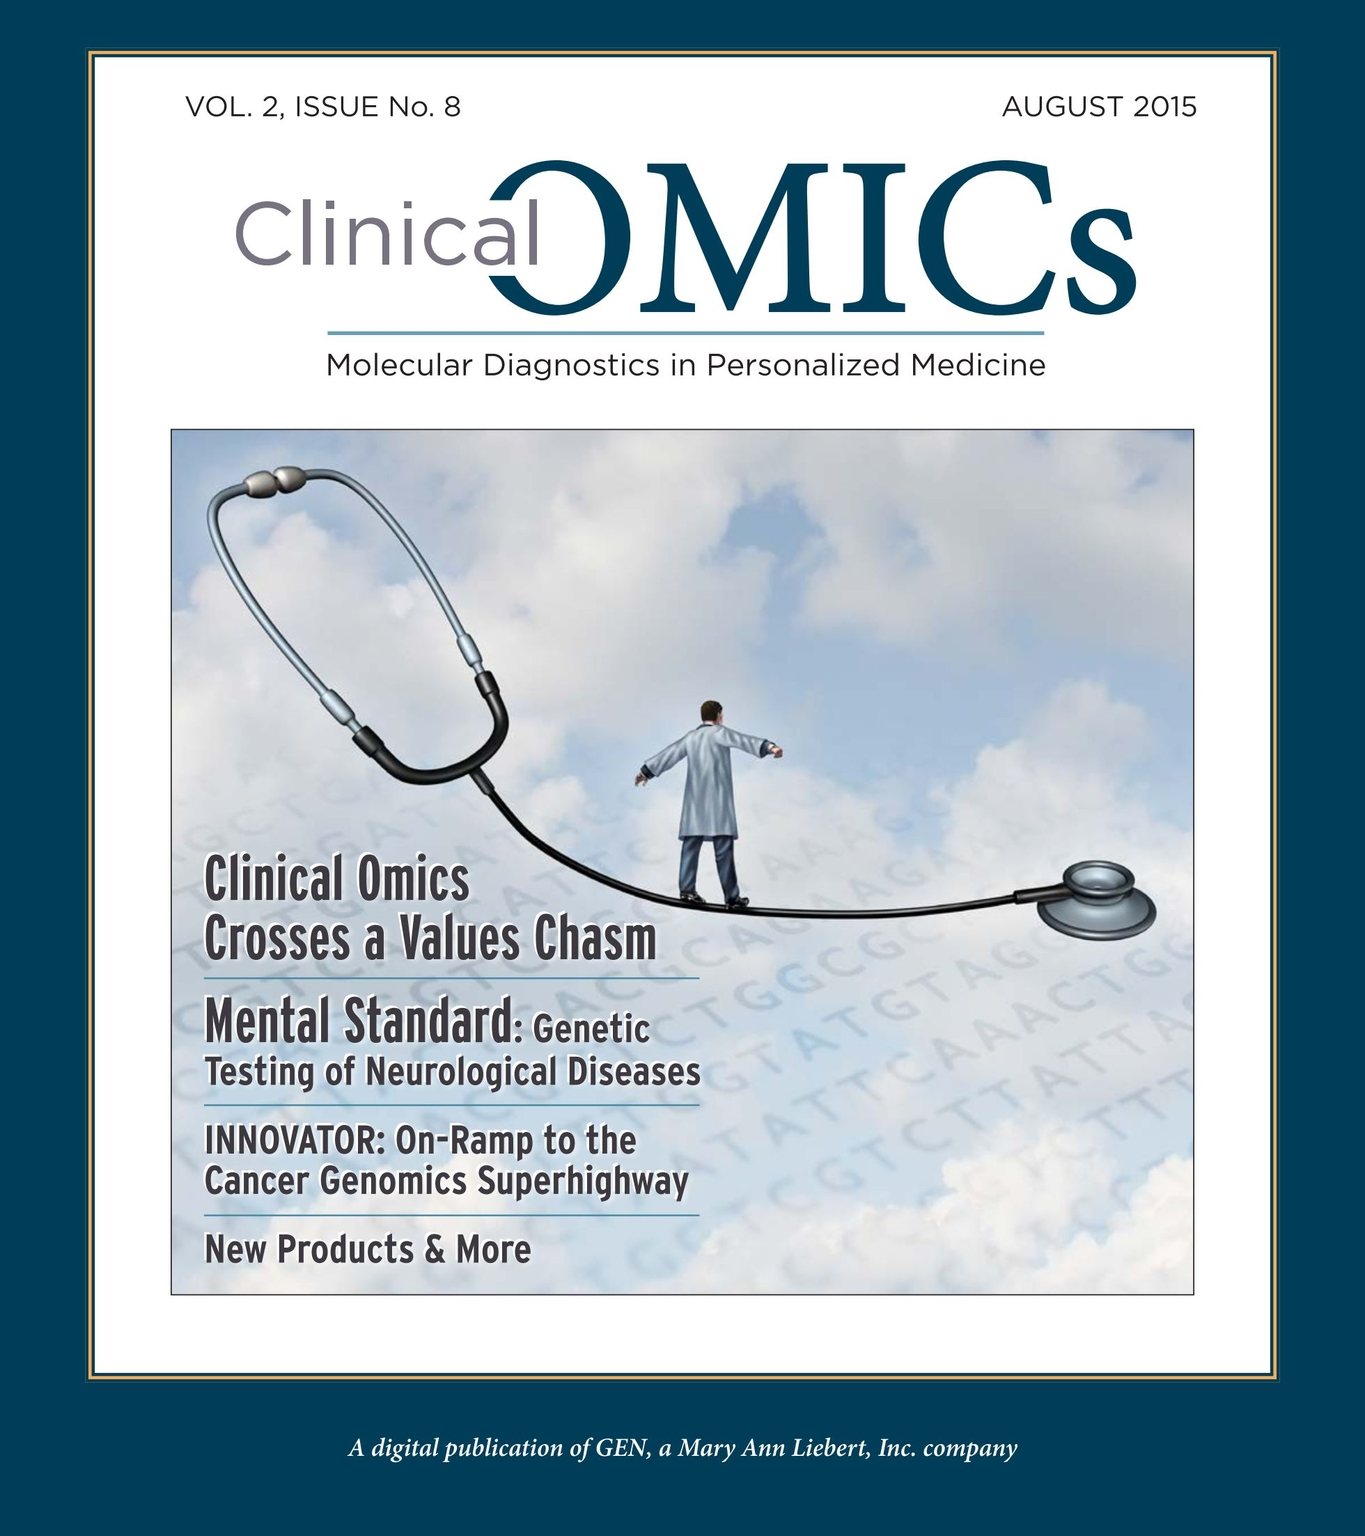 Clinical OMICs - Volume 2, Issue 8